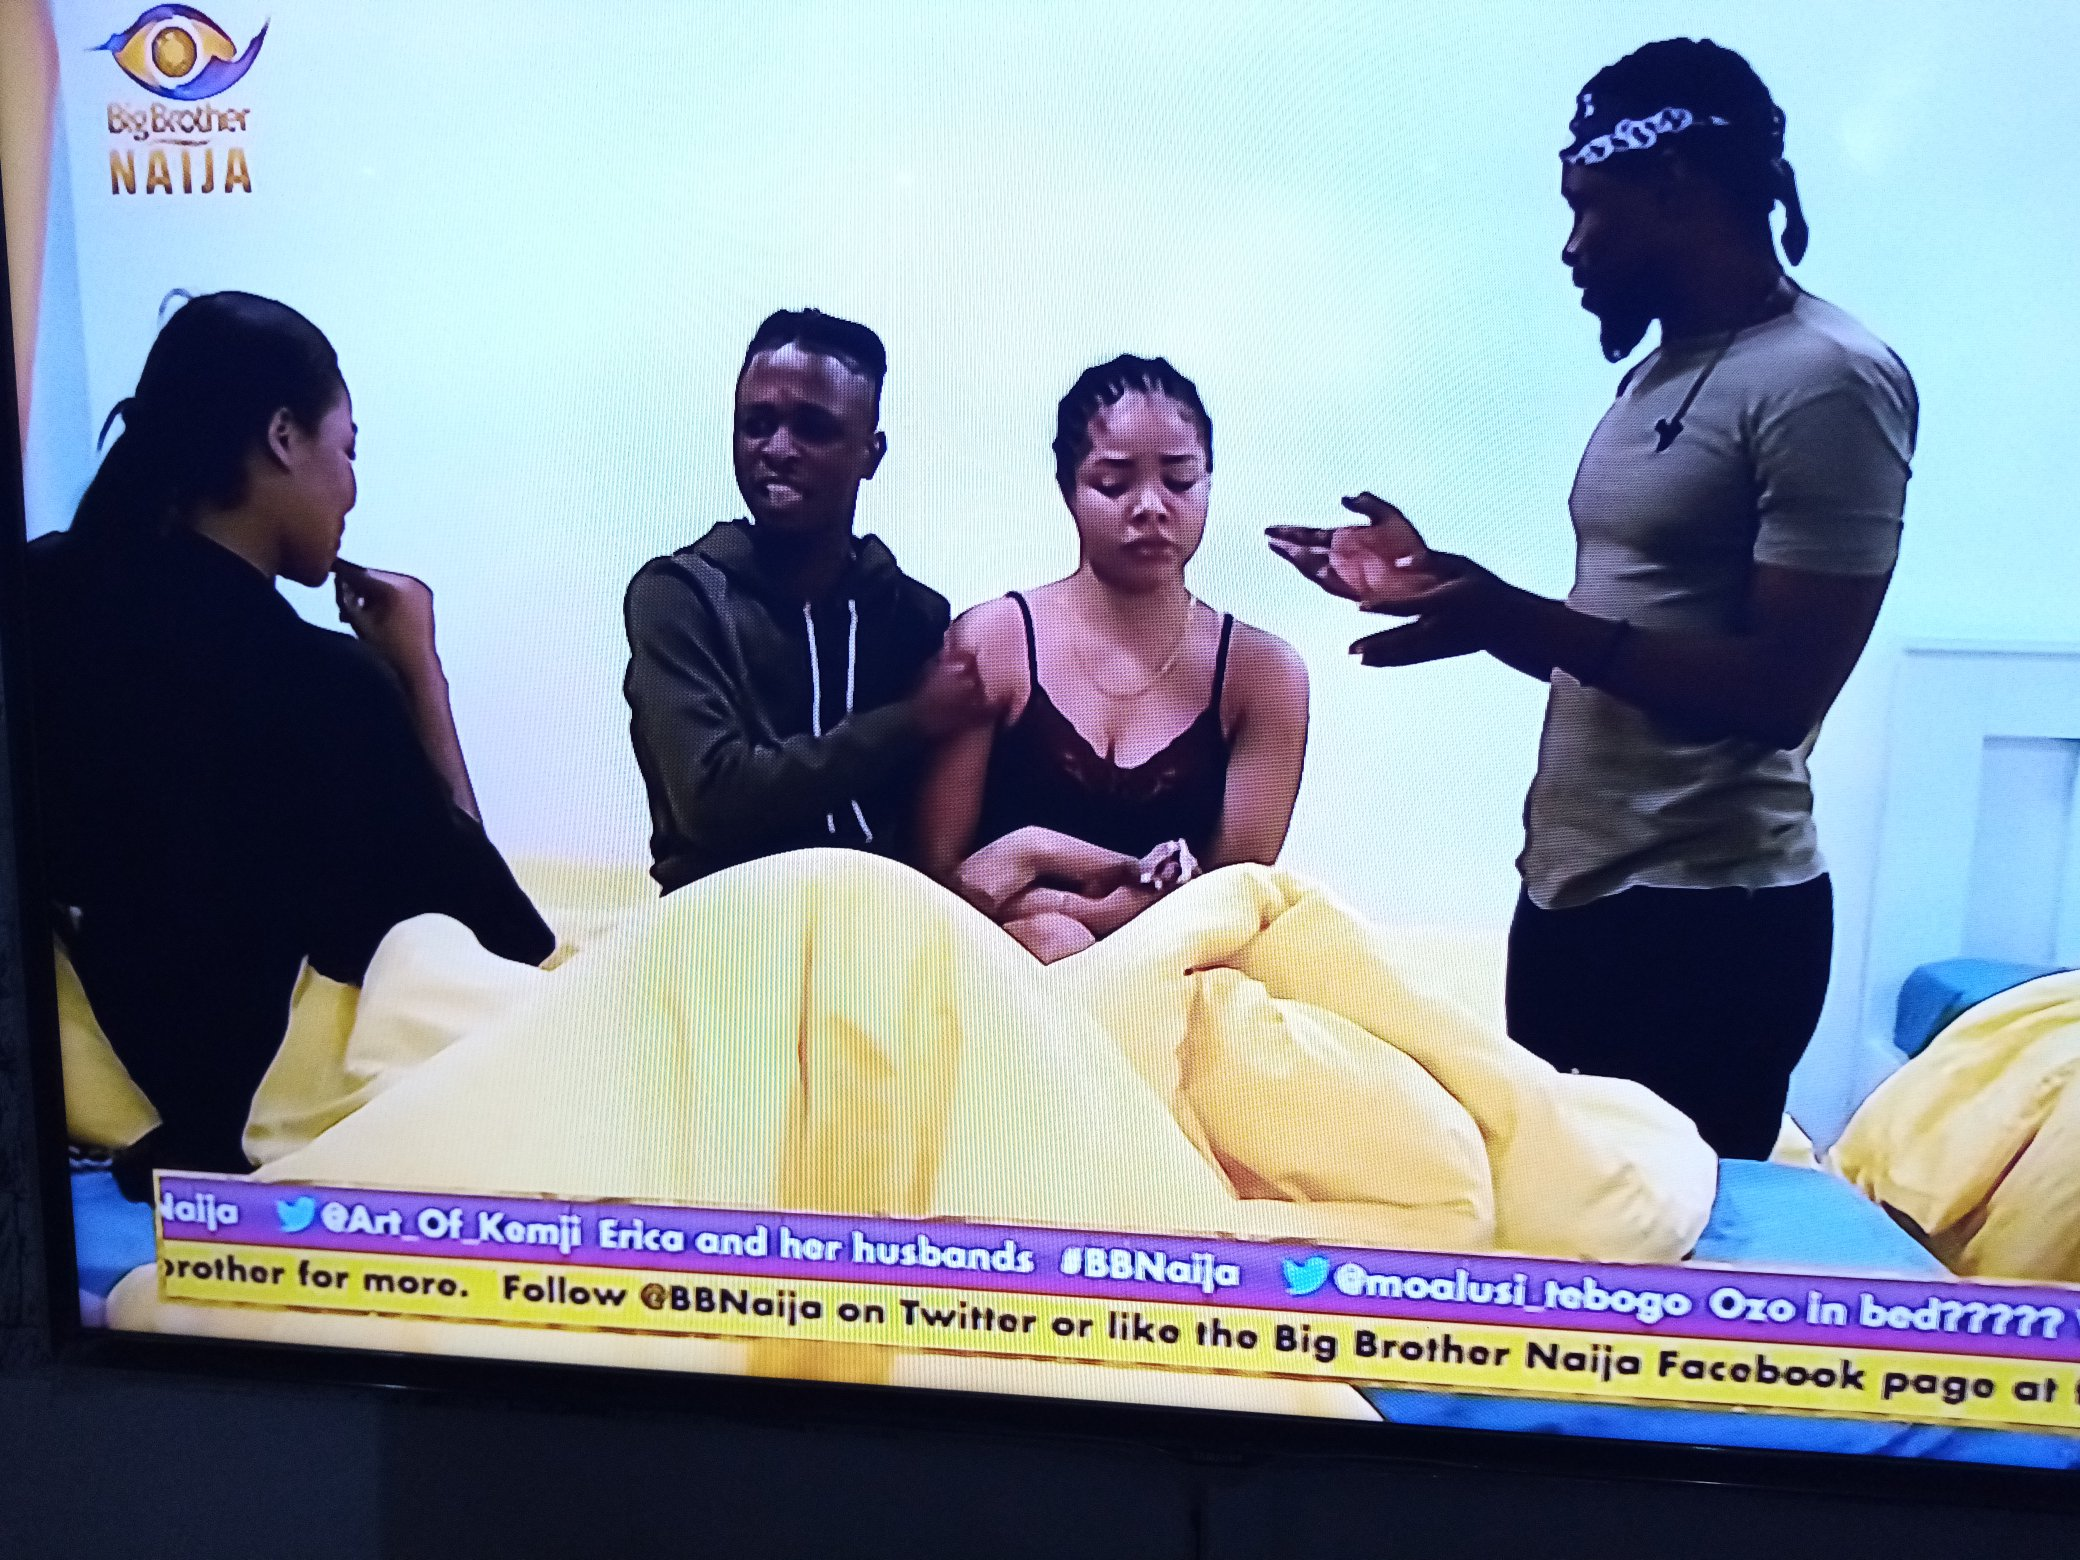 #BBNaija2020 : See the housemates most likely to be evicted on Sunday based on Online Poll